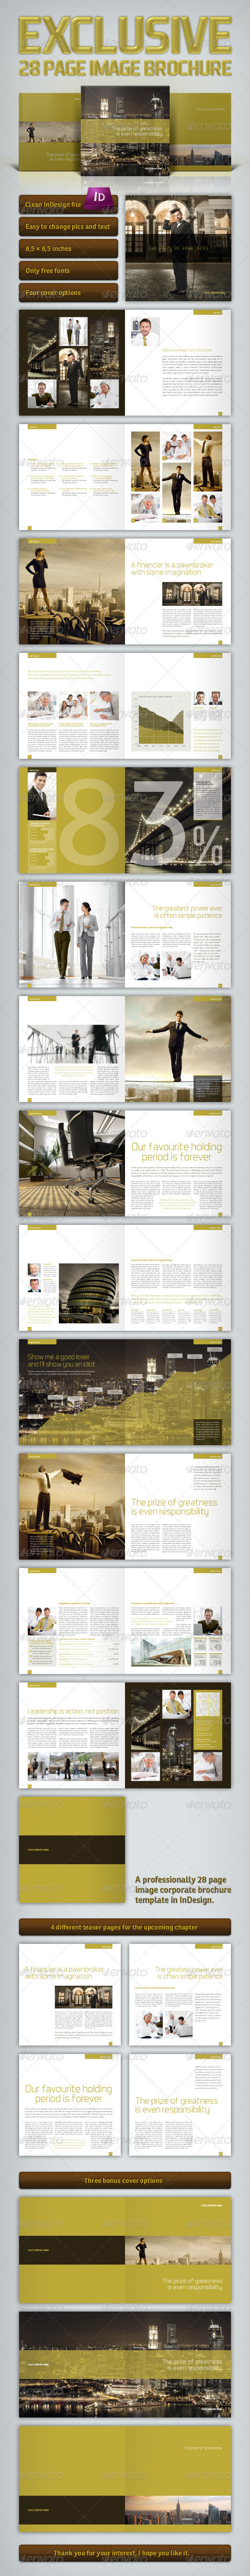 GraphicRiver Exclusive Brochure 3208734